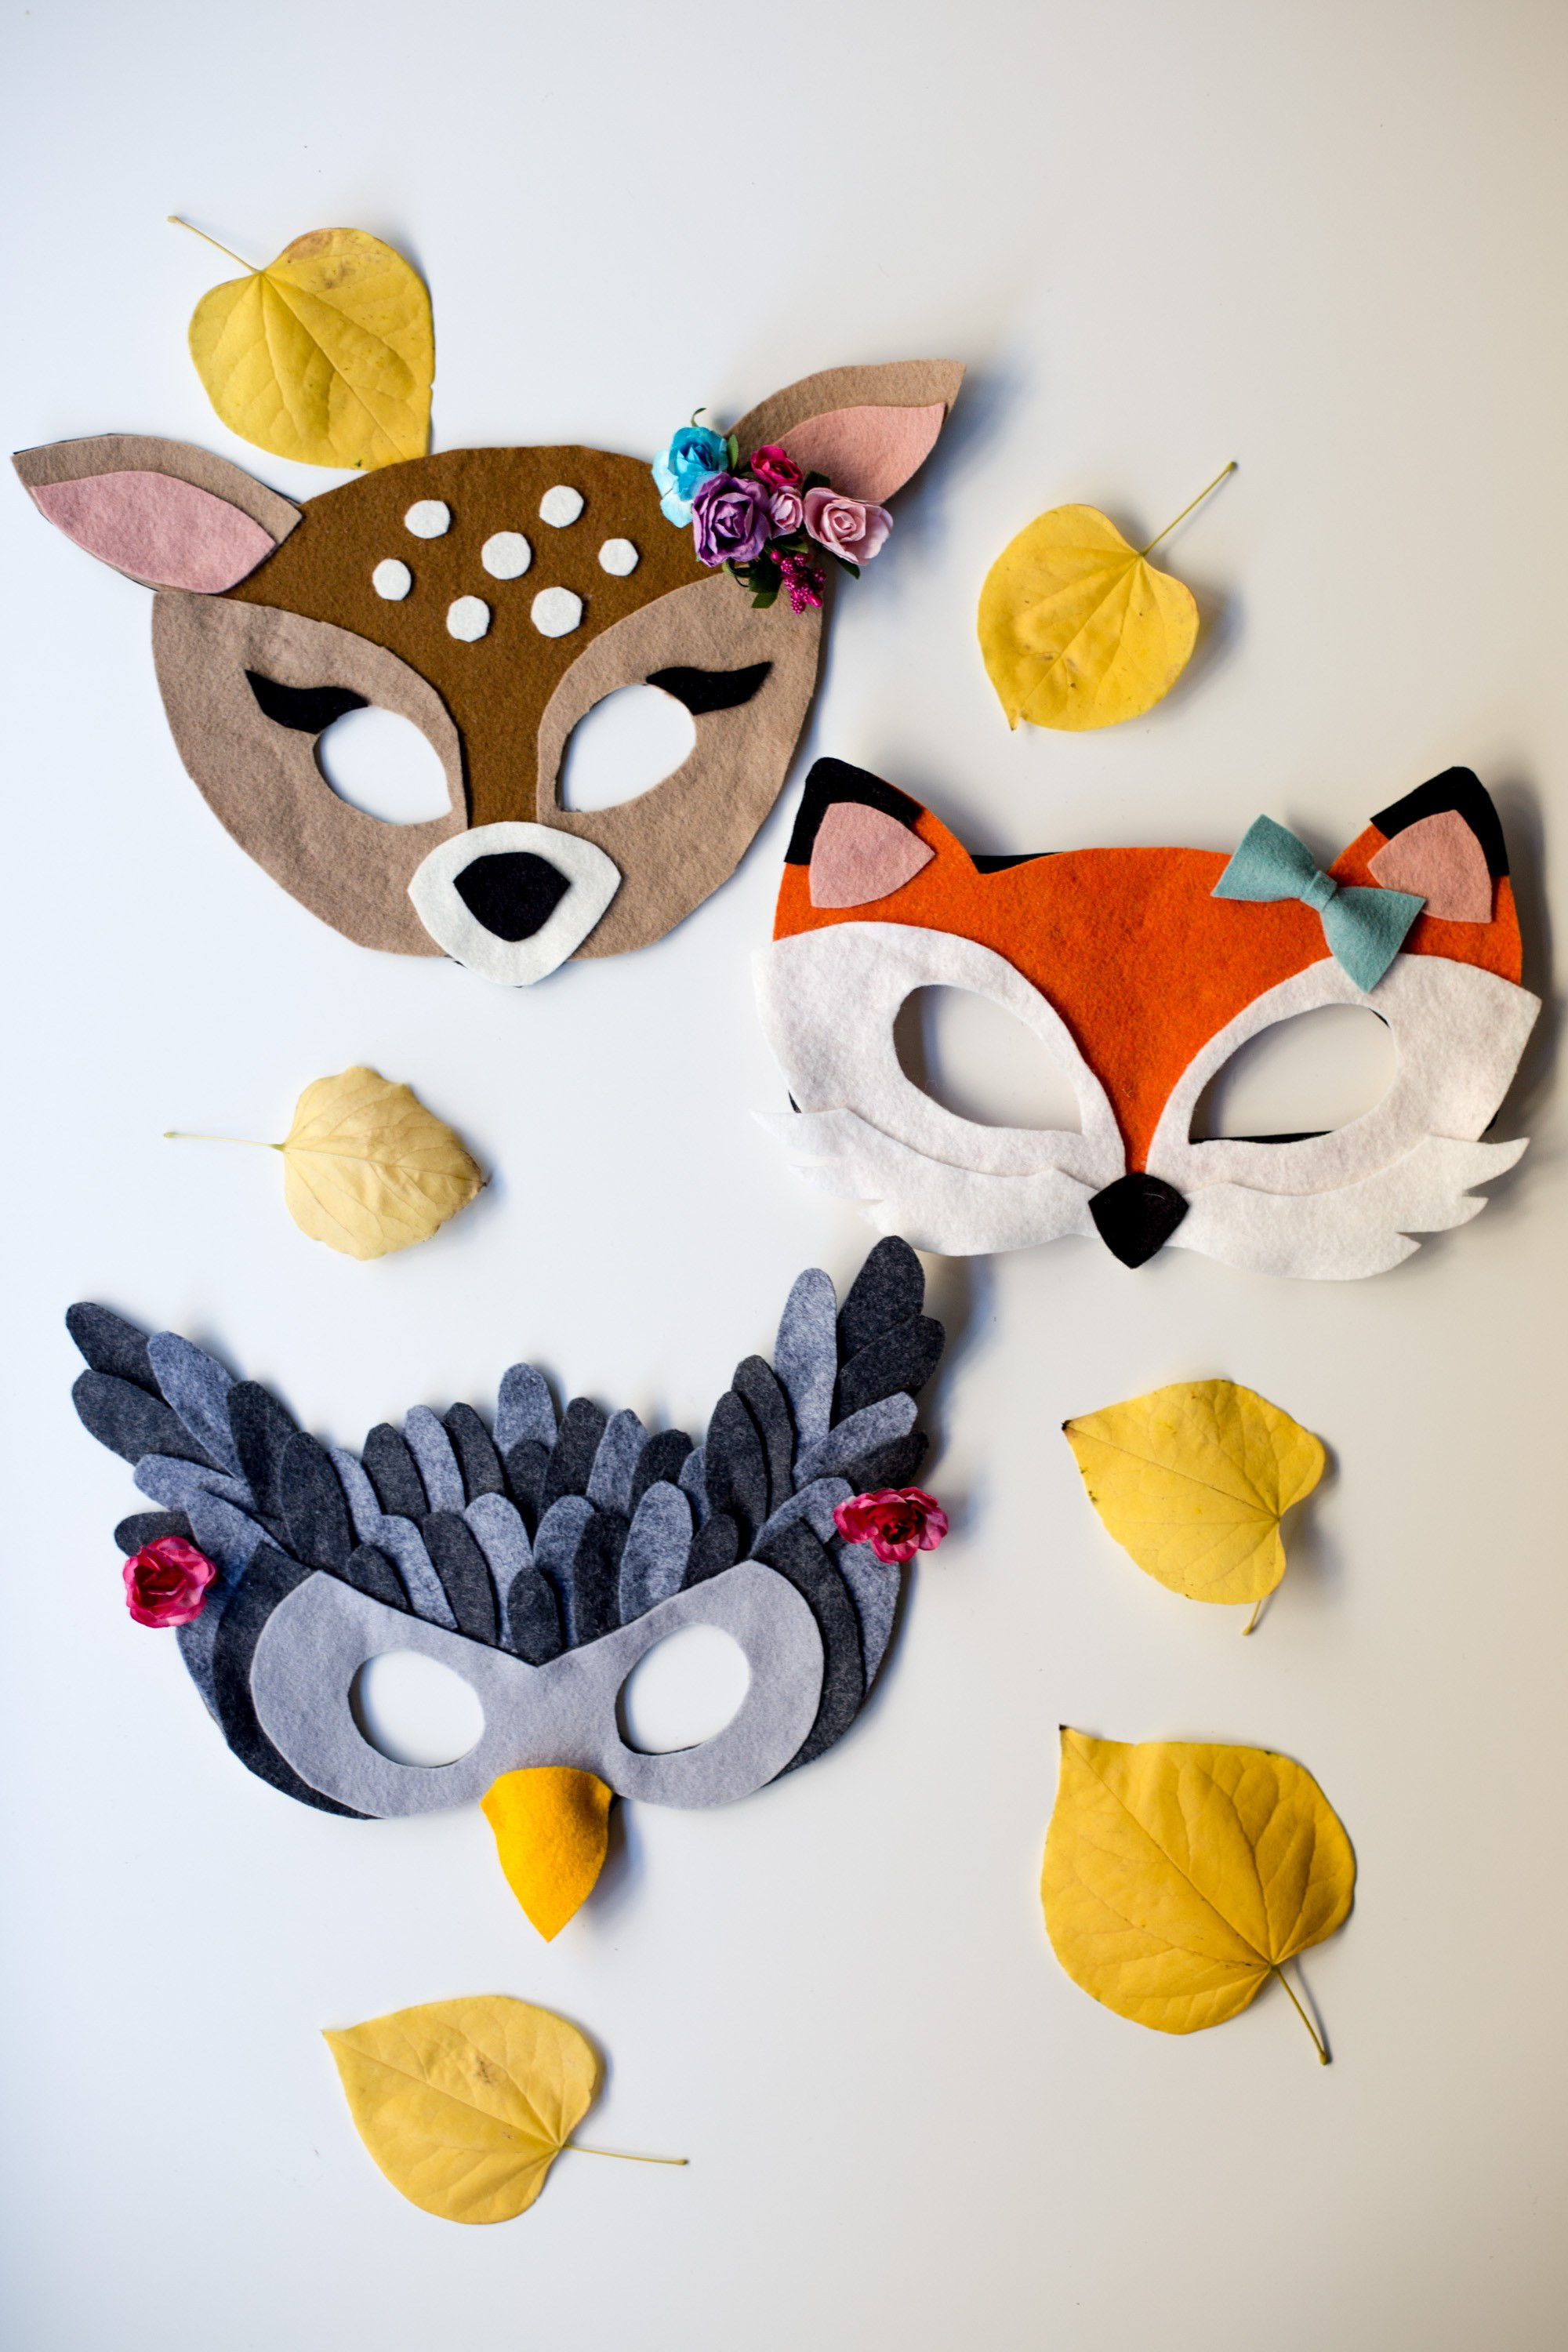 Best ideas about DIY Animal Mask . Save or Pin No Sew Free Felt Animal Mask Patterns Flax & Twine Now.